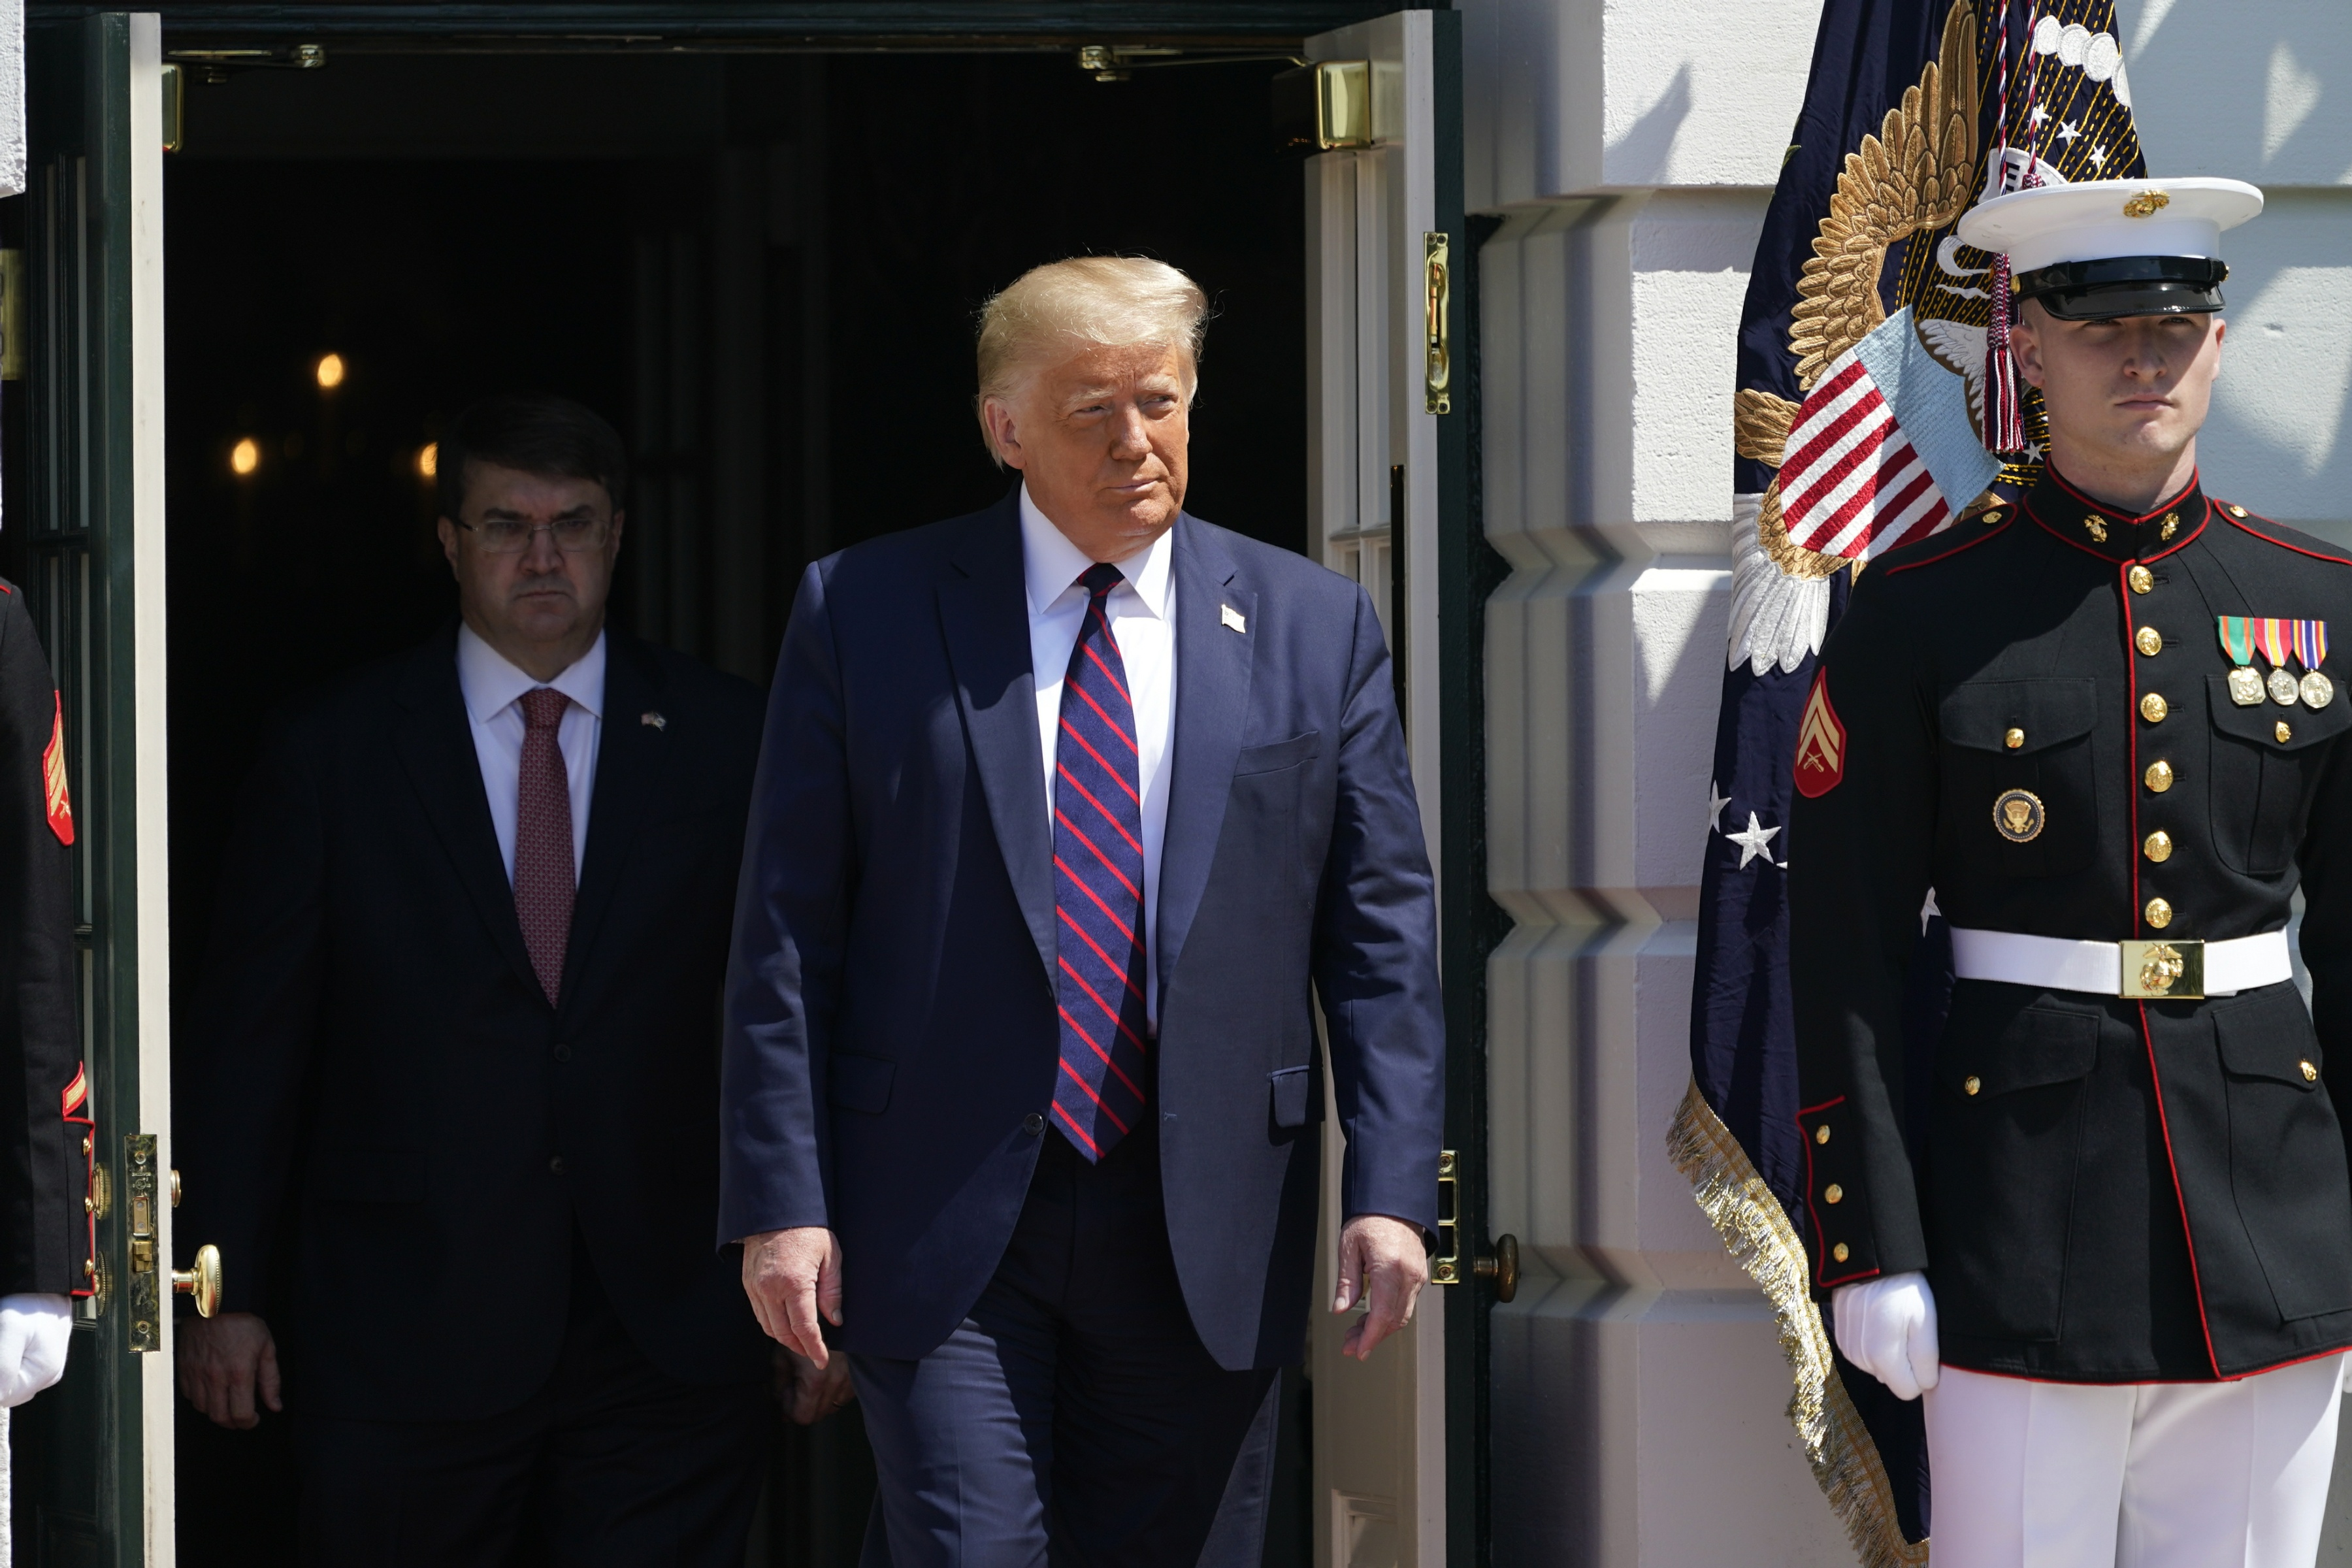 President Trump Welcomes Terry Sharpe to the White House